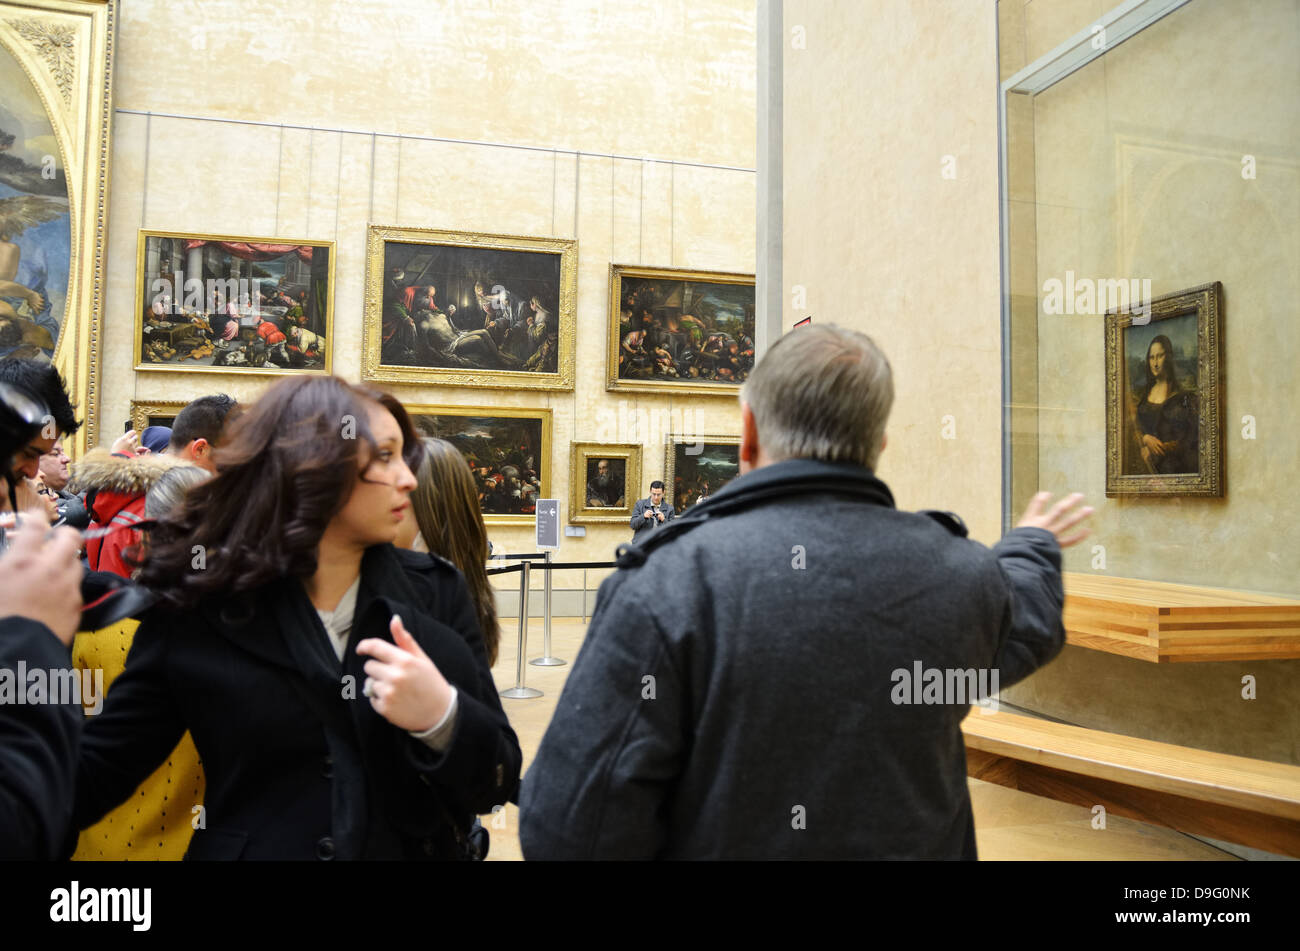 Visitors viewing the Mona Lisa in the Musee du Louvre in Paris, France - Jan 2012 Stock Photo